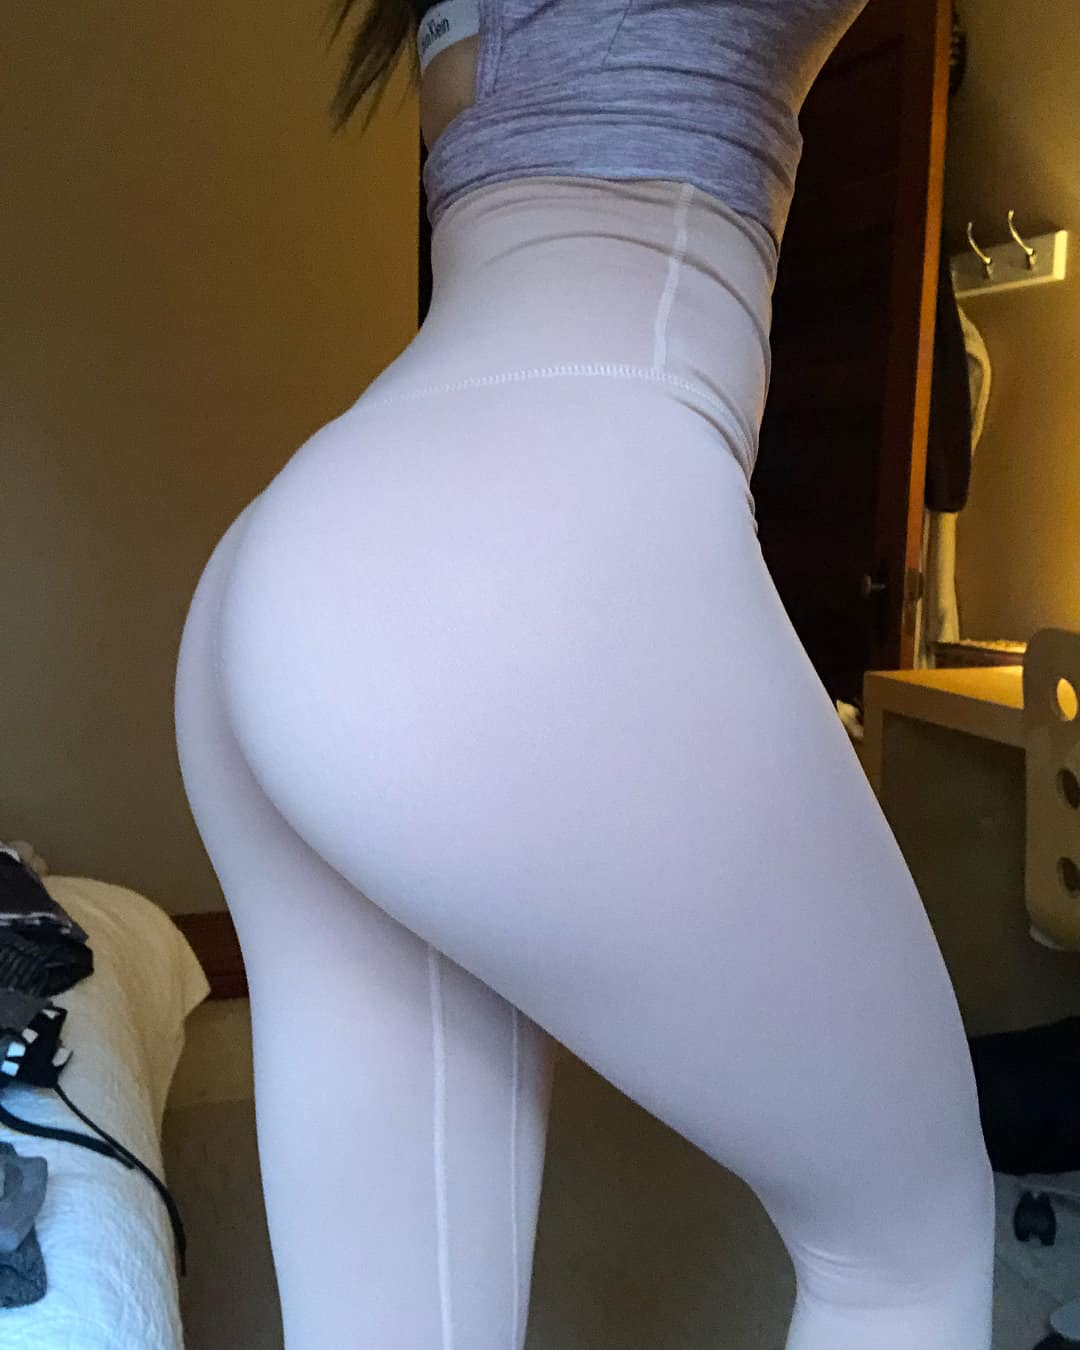 incredible all white yoga outfit beach